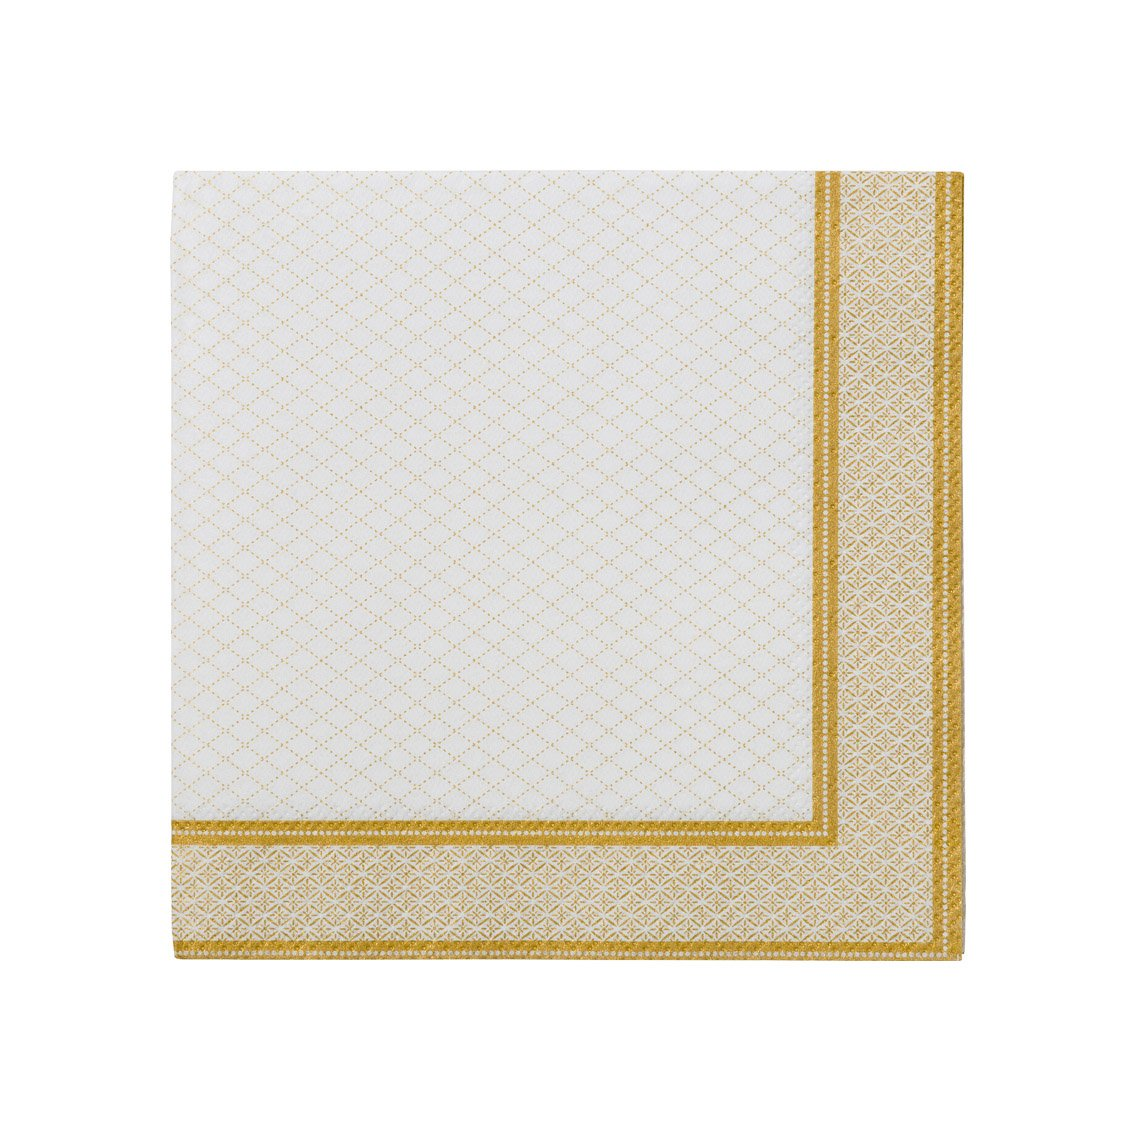 Party Porcelain Gold Cocktail Napkins